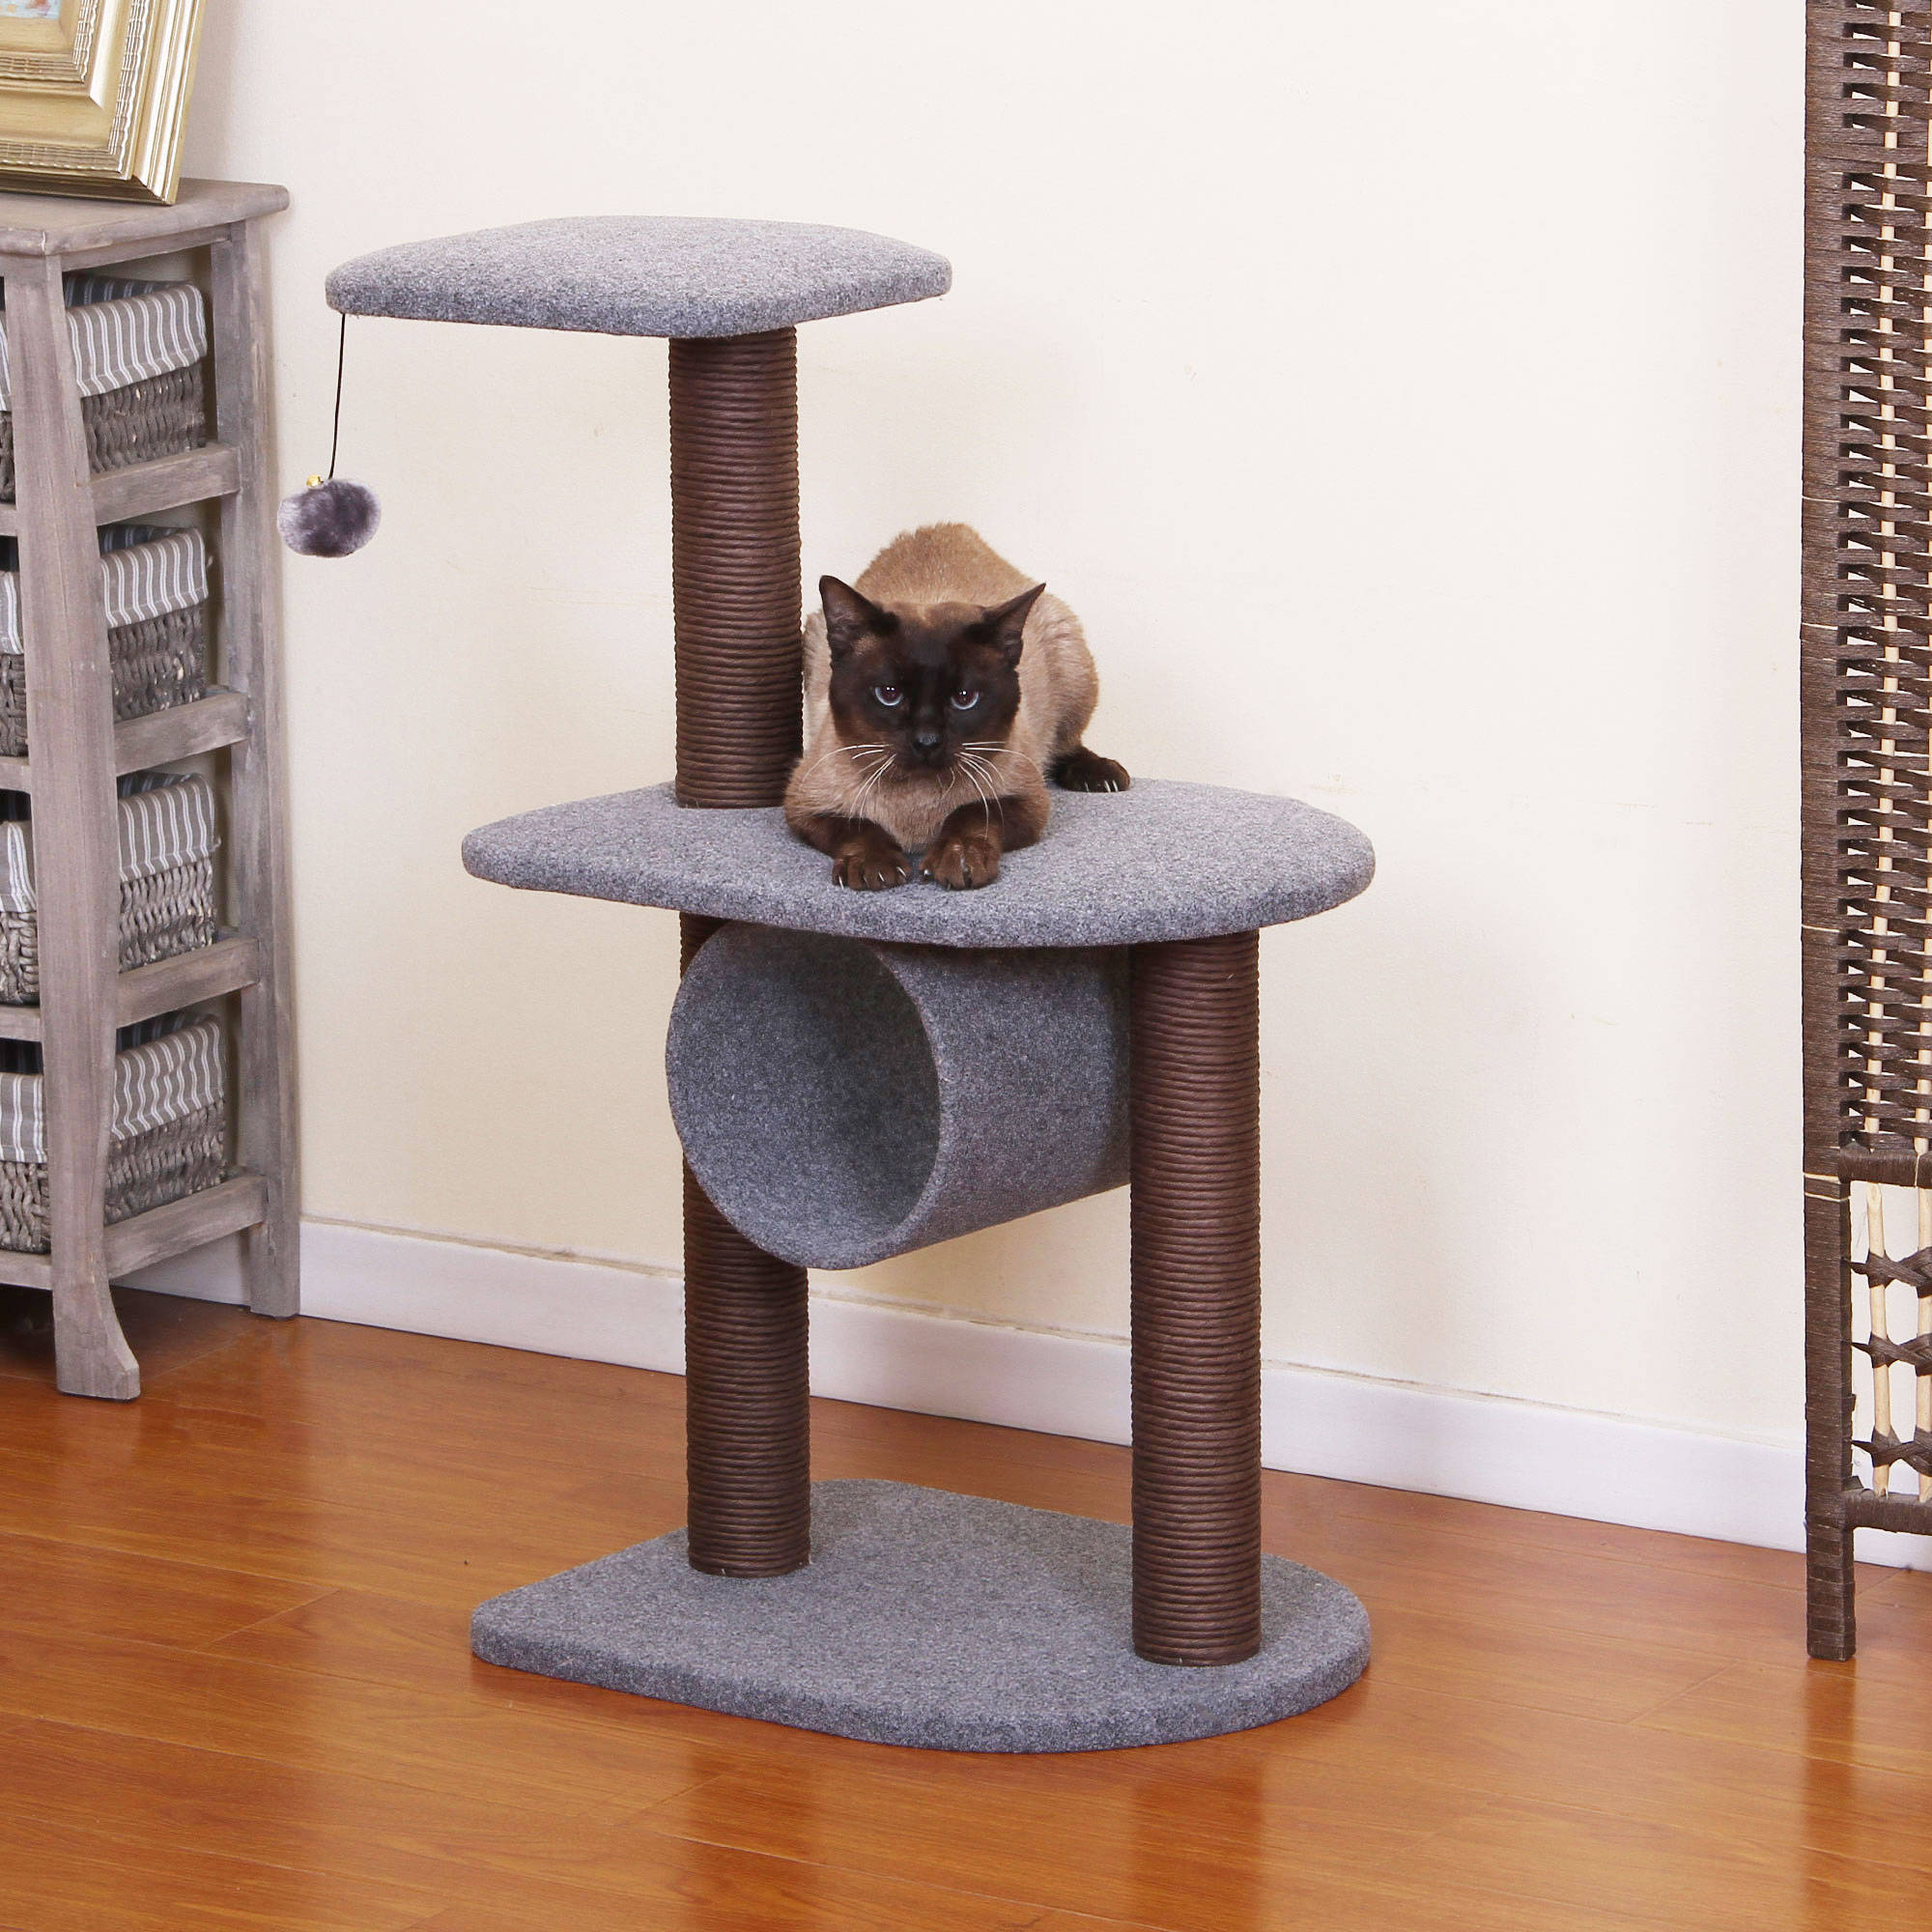 PetPals Group Teeny Chocolate and Grey Color Cat Tree